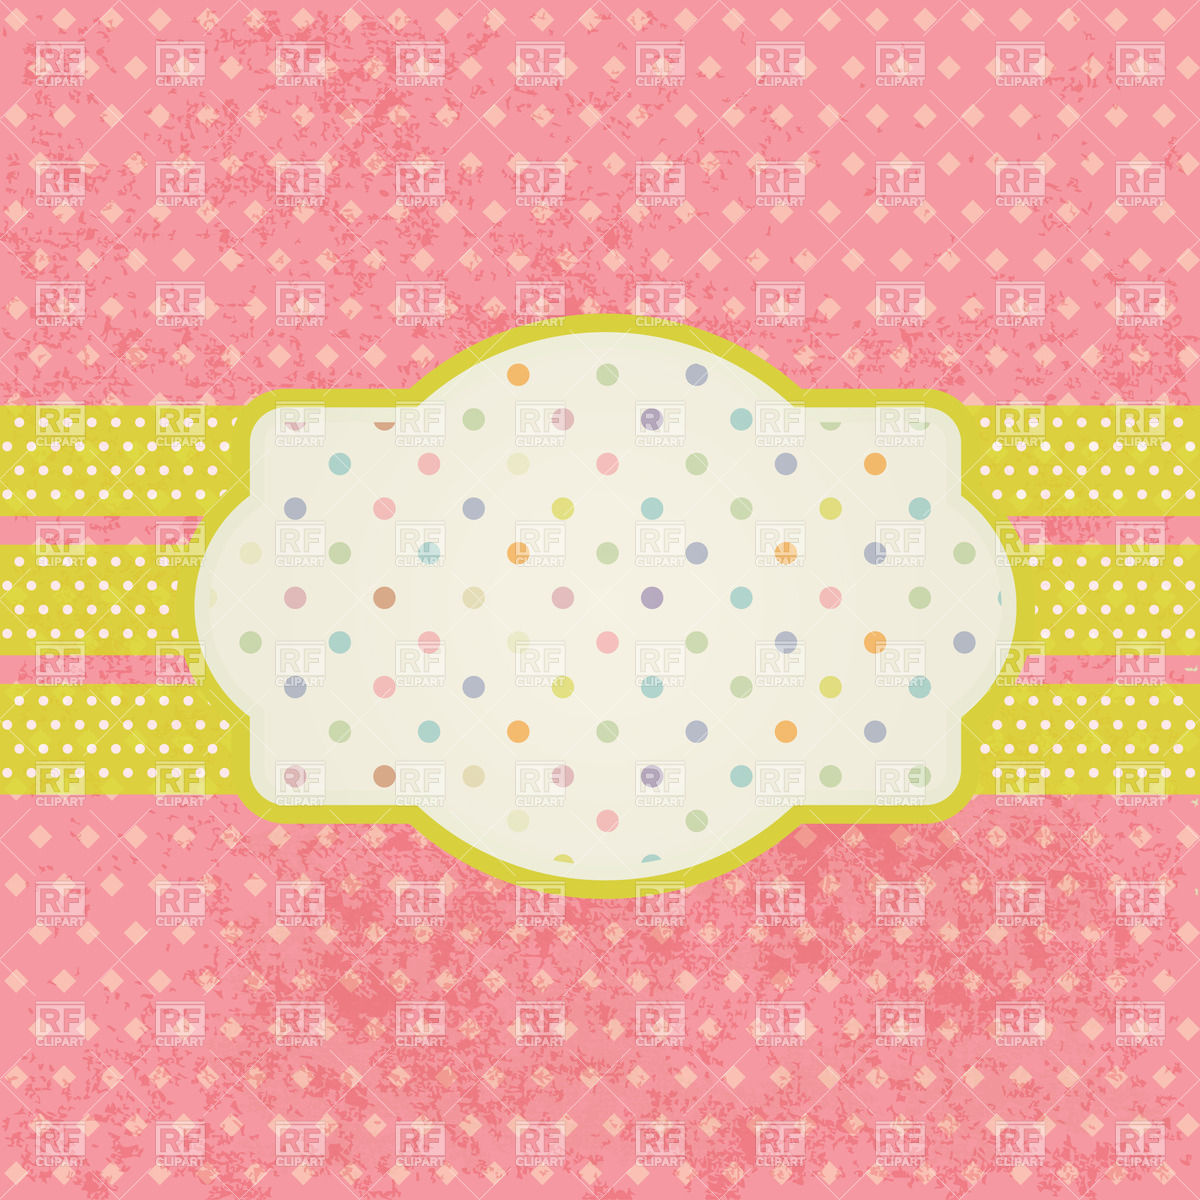 Vintage Frame For Text On Polka Dot Background 22832 Borders And